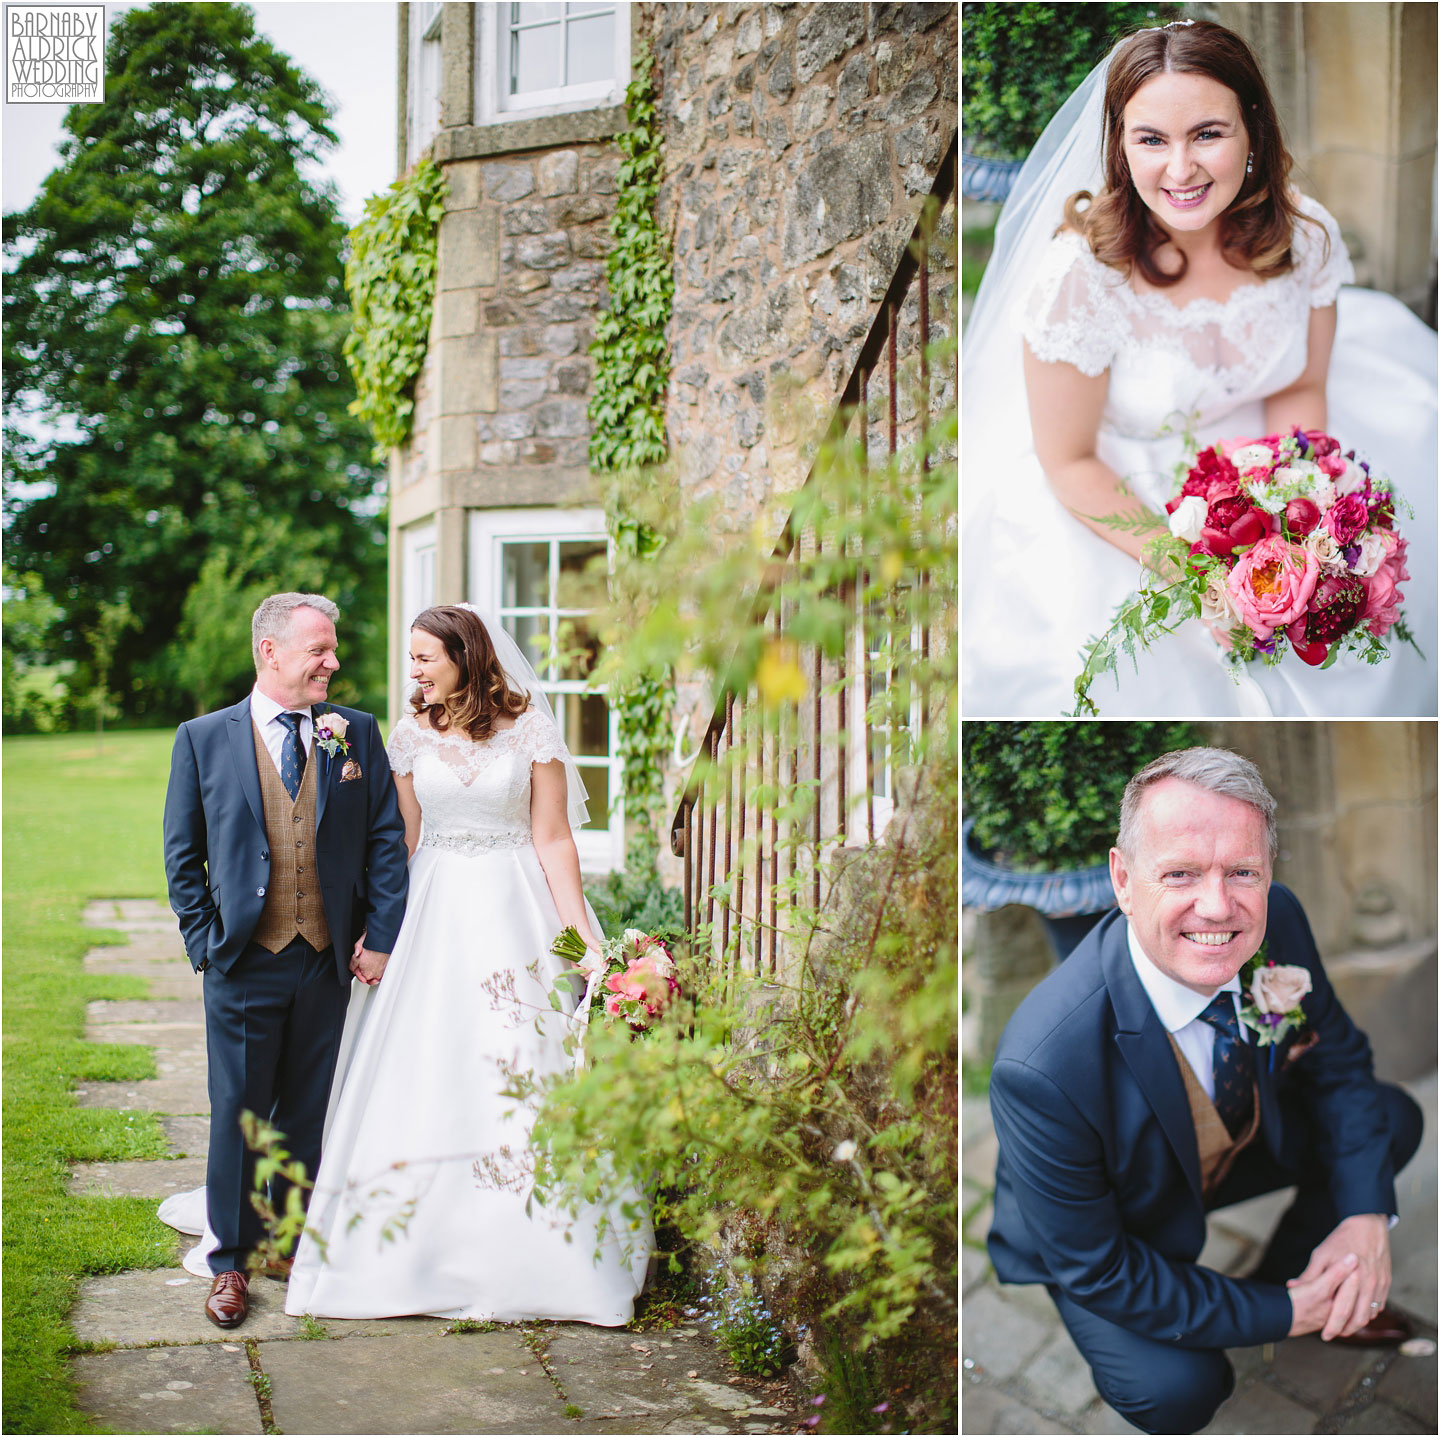 Summer wedding photography at the Inn at Whitewell; Clitheroe Wedding Photographer Lancashire; Lancashire Wedding photography; Barnaby Aldrick Wedding Photography